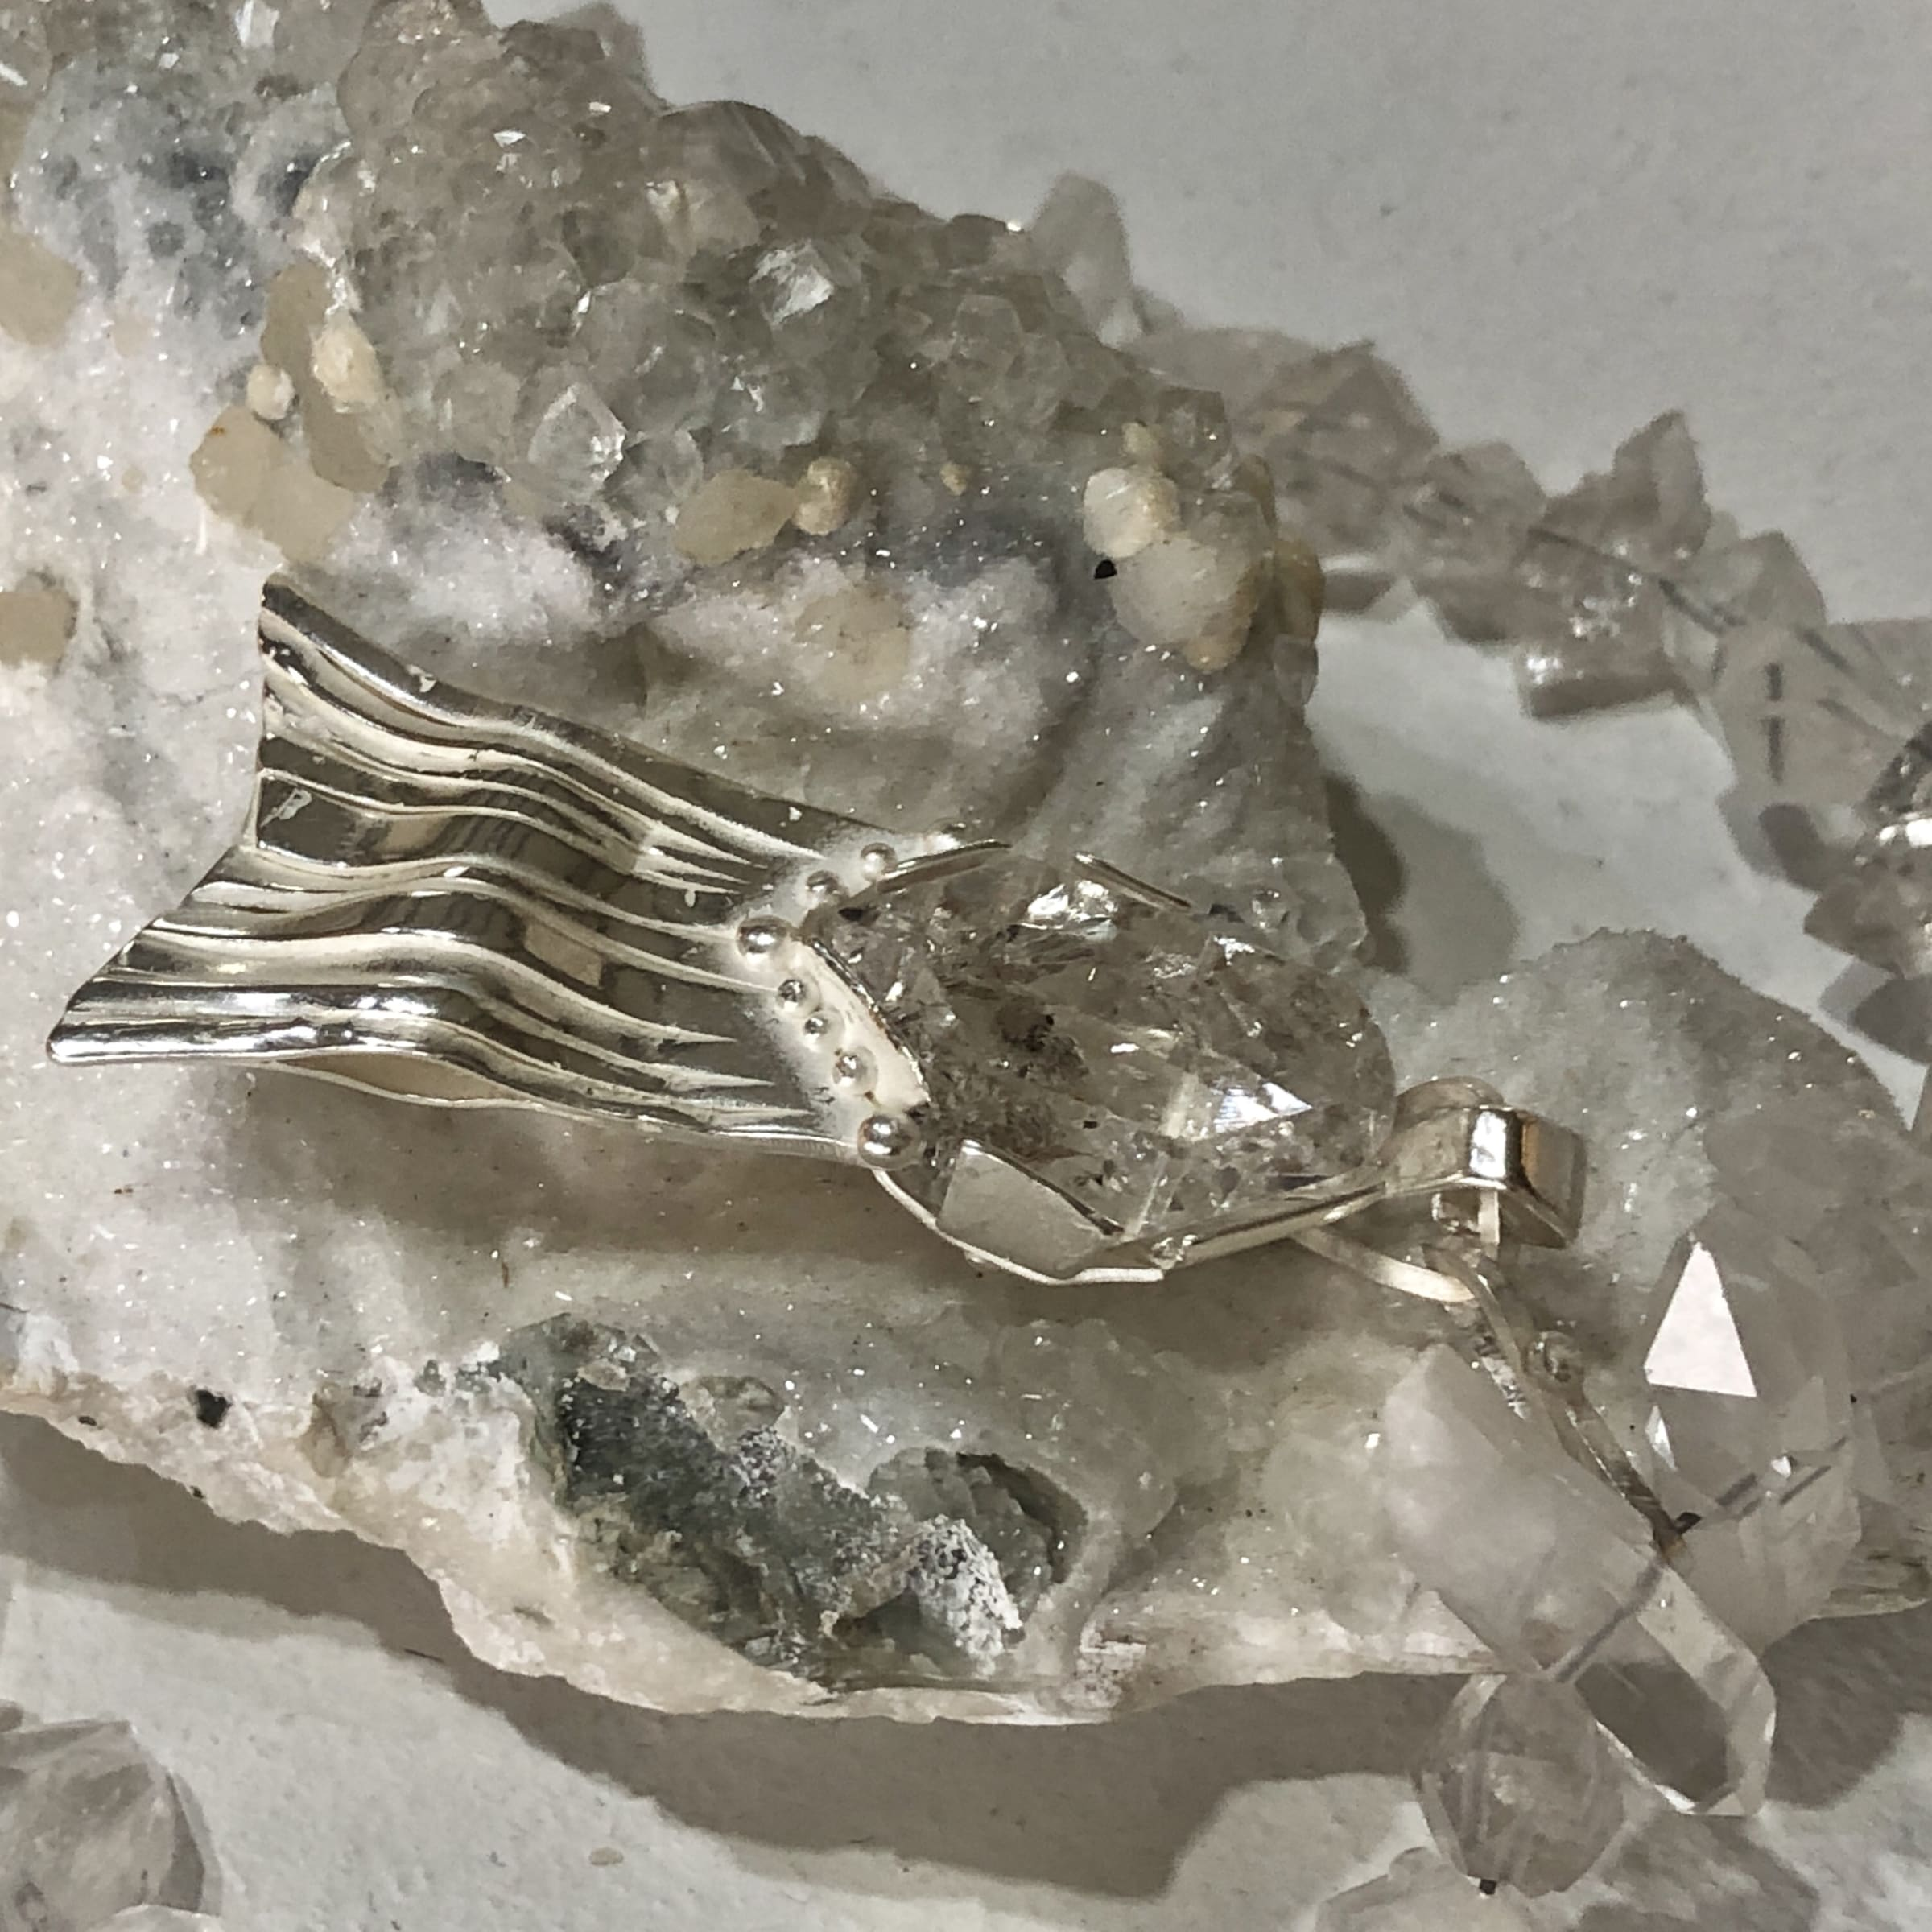 "<span class=""link fancybox-details-link""><a href=""/artists/186-helen-feiler/works/6760-helen-feiler-sculptural-double-ended-quartz-crystal-and-silver-fish-2019/"">View Detail Page</a></span><div class=""artist""><strong>Helen Feiler</strong></div> <div class=""title""><em>Sculptural Double Ended Quartz Crystal and Silver 'Fish' Pendant with Double Quartz Crystal Beads on Quartz Boulder</em>, 2019</div> <div class=""medium"">Double ended quartz crystal and silver with double ended quartz crystal beads and quartz crystal boulder sculpture</div><div class=""copyright_line"">Own Art: £110.00 x 10 monthly payments</div>"